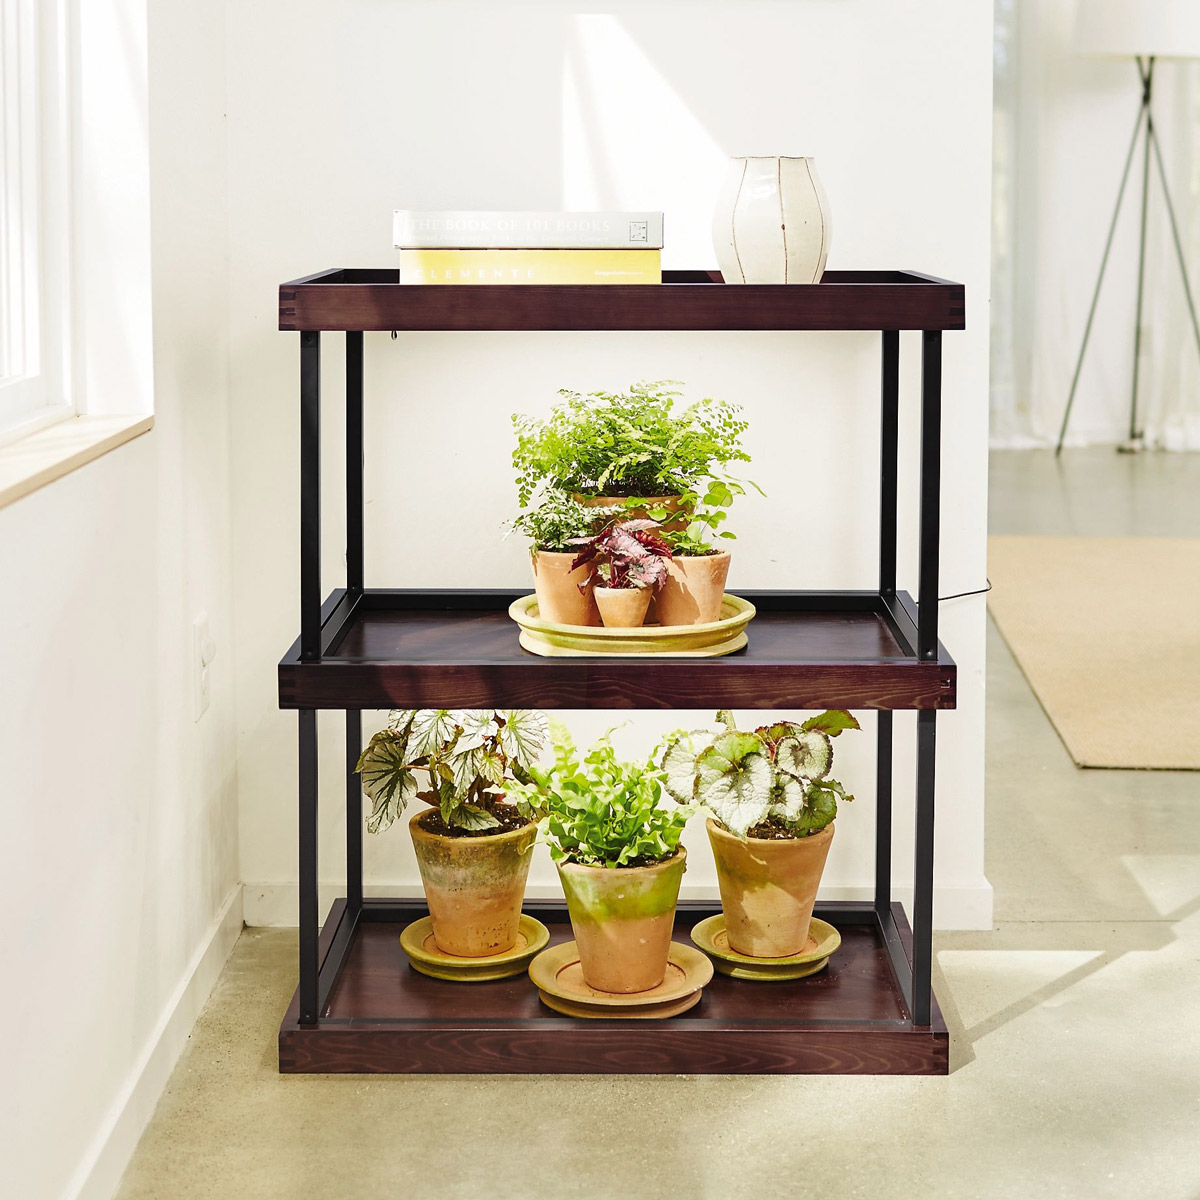 Stackable Wooden Shelves With Built-In